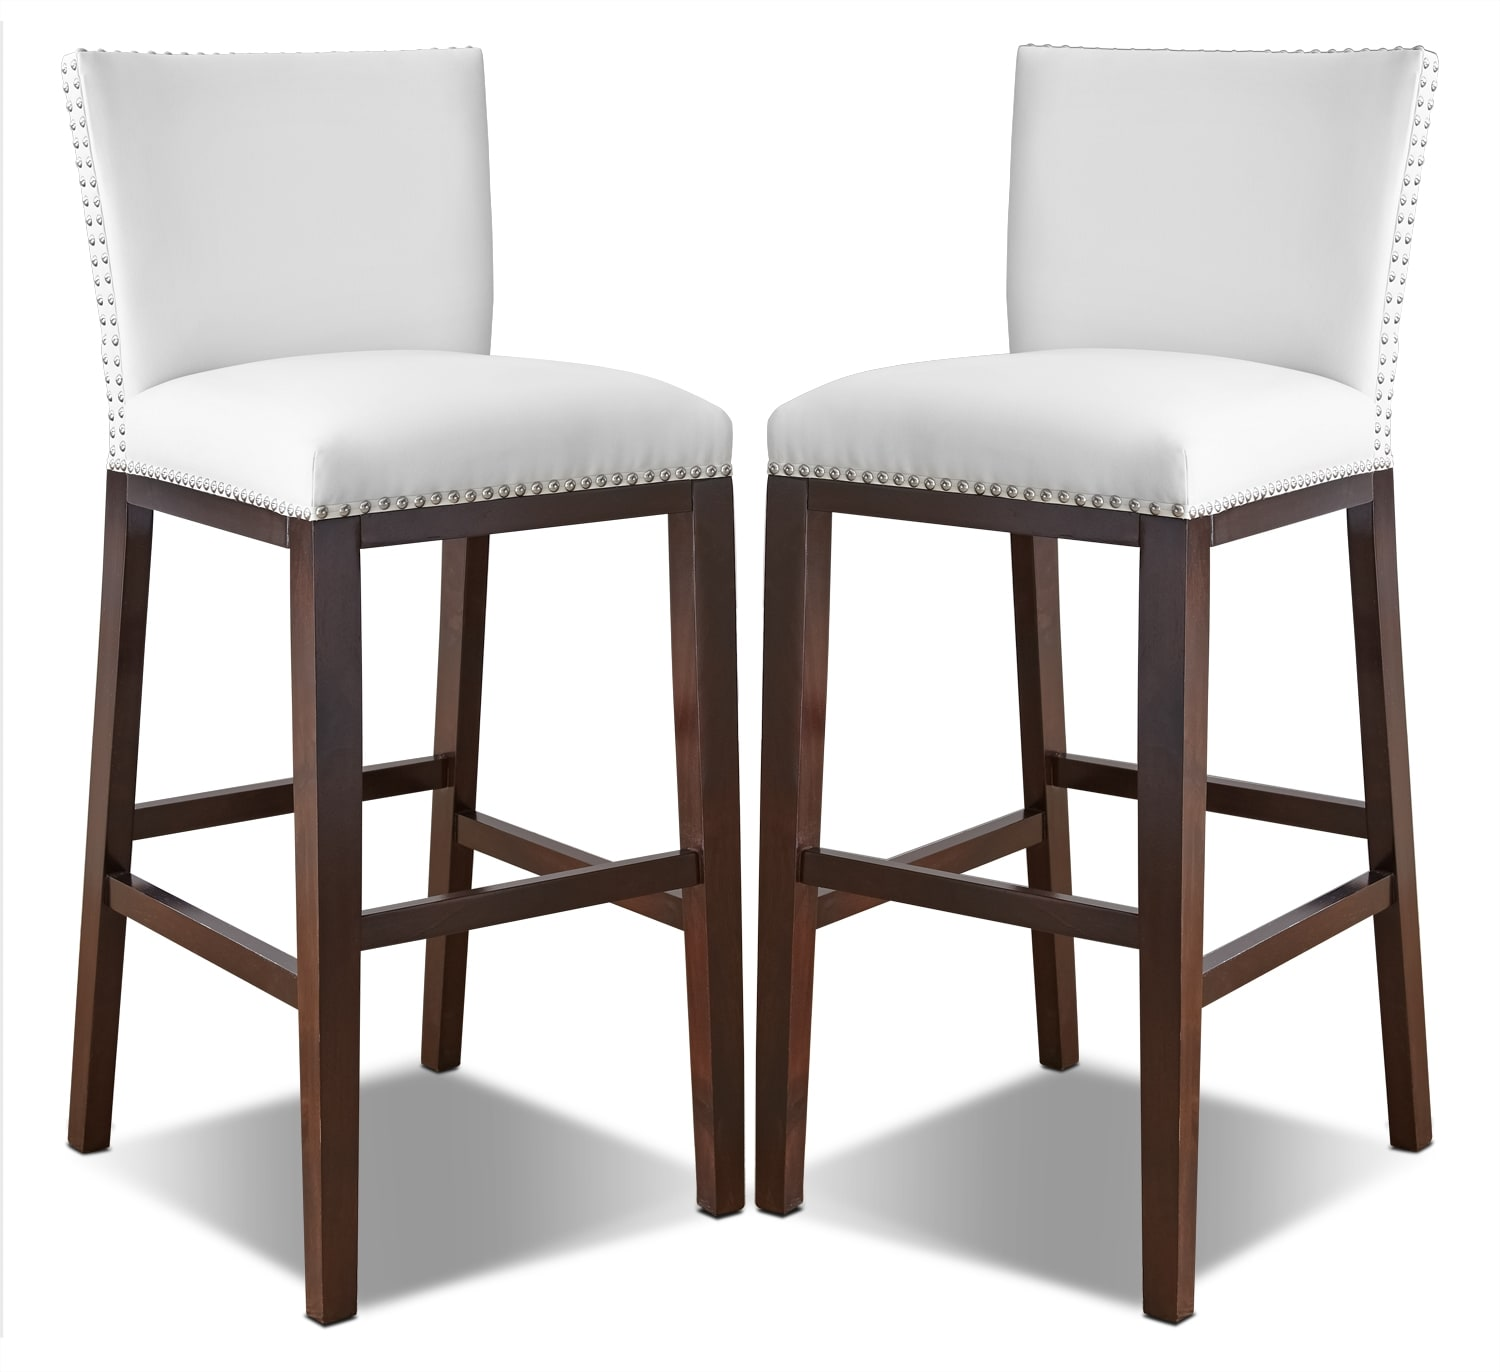 Tiffany Bar-Height Dining Chair, Set of 2 – White